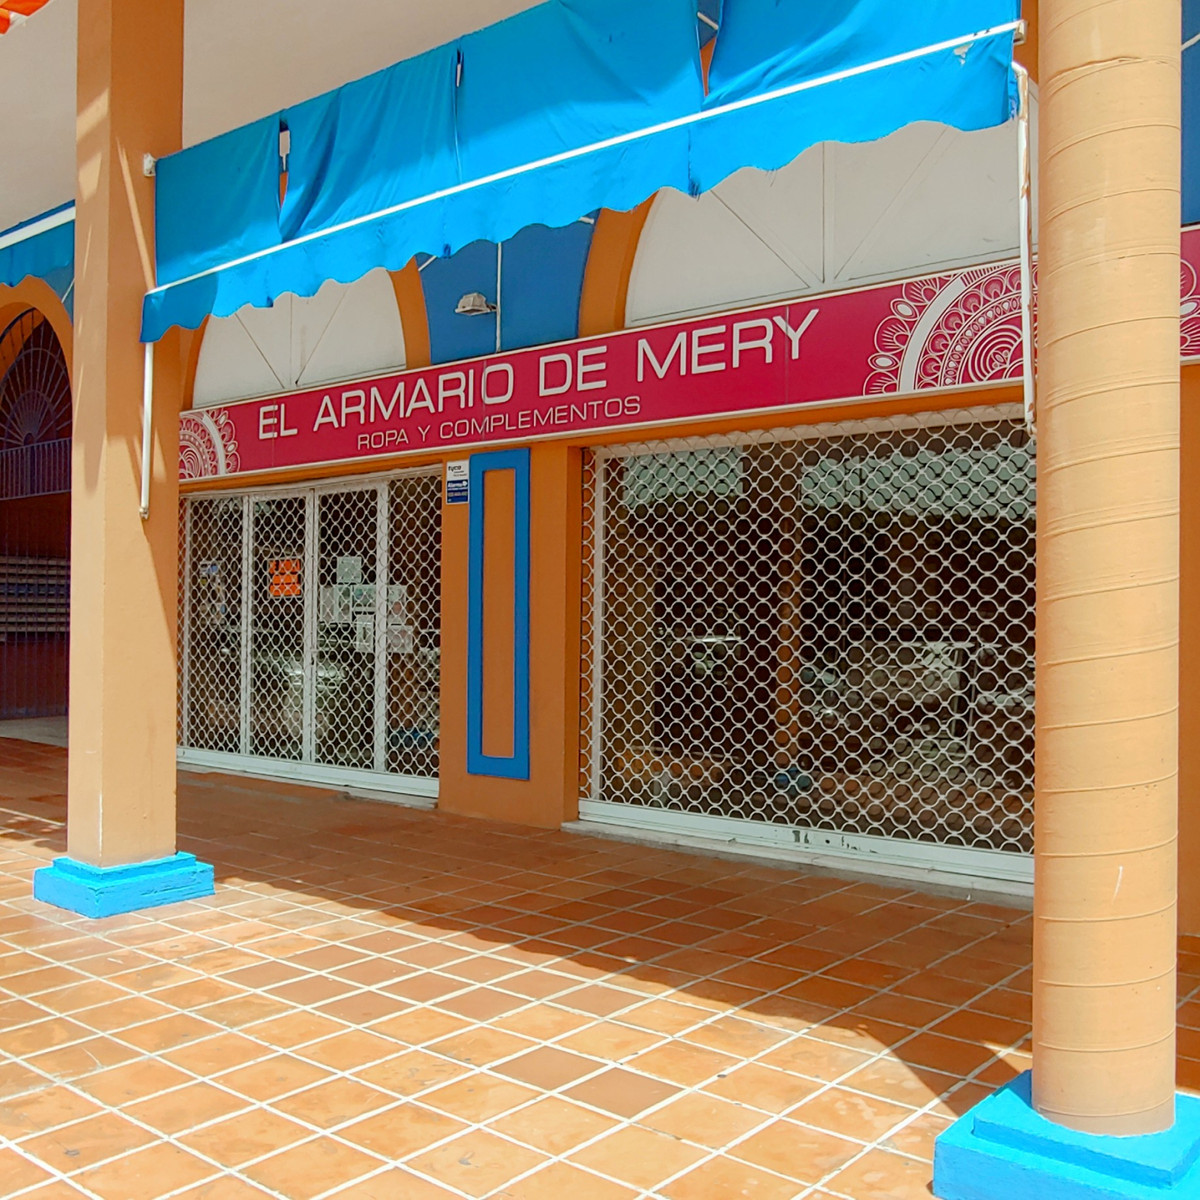 Commercial  Commercial Premises for rent  in Calahonda